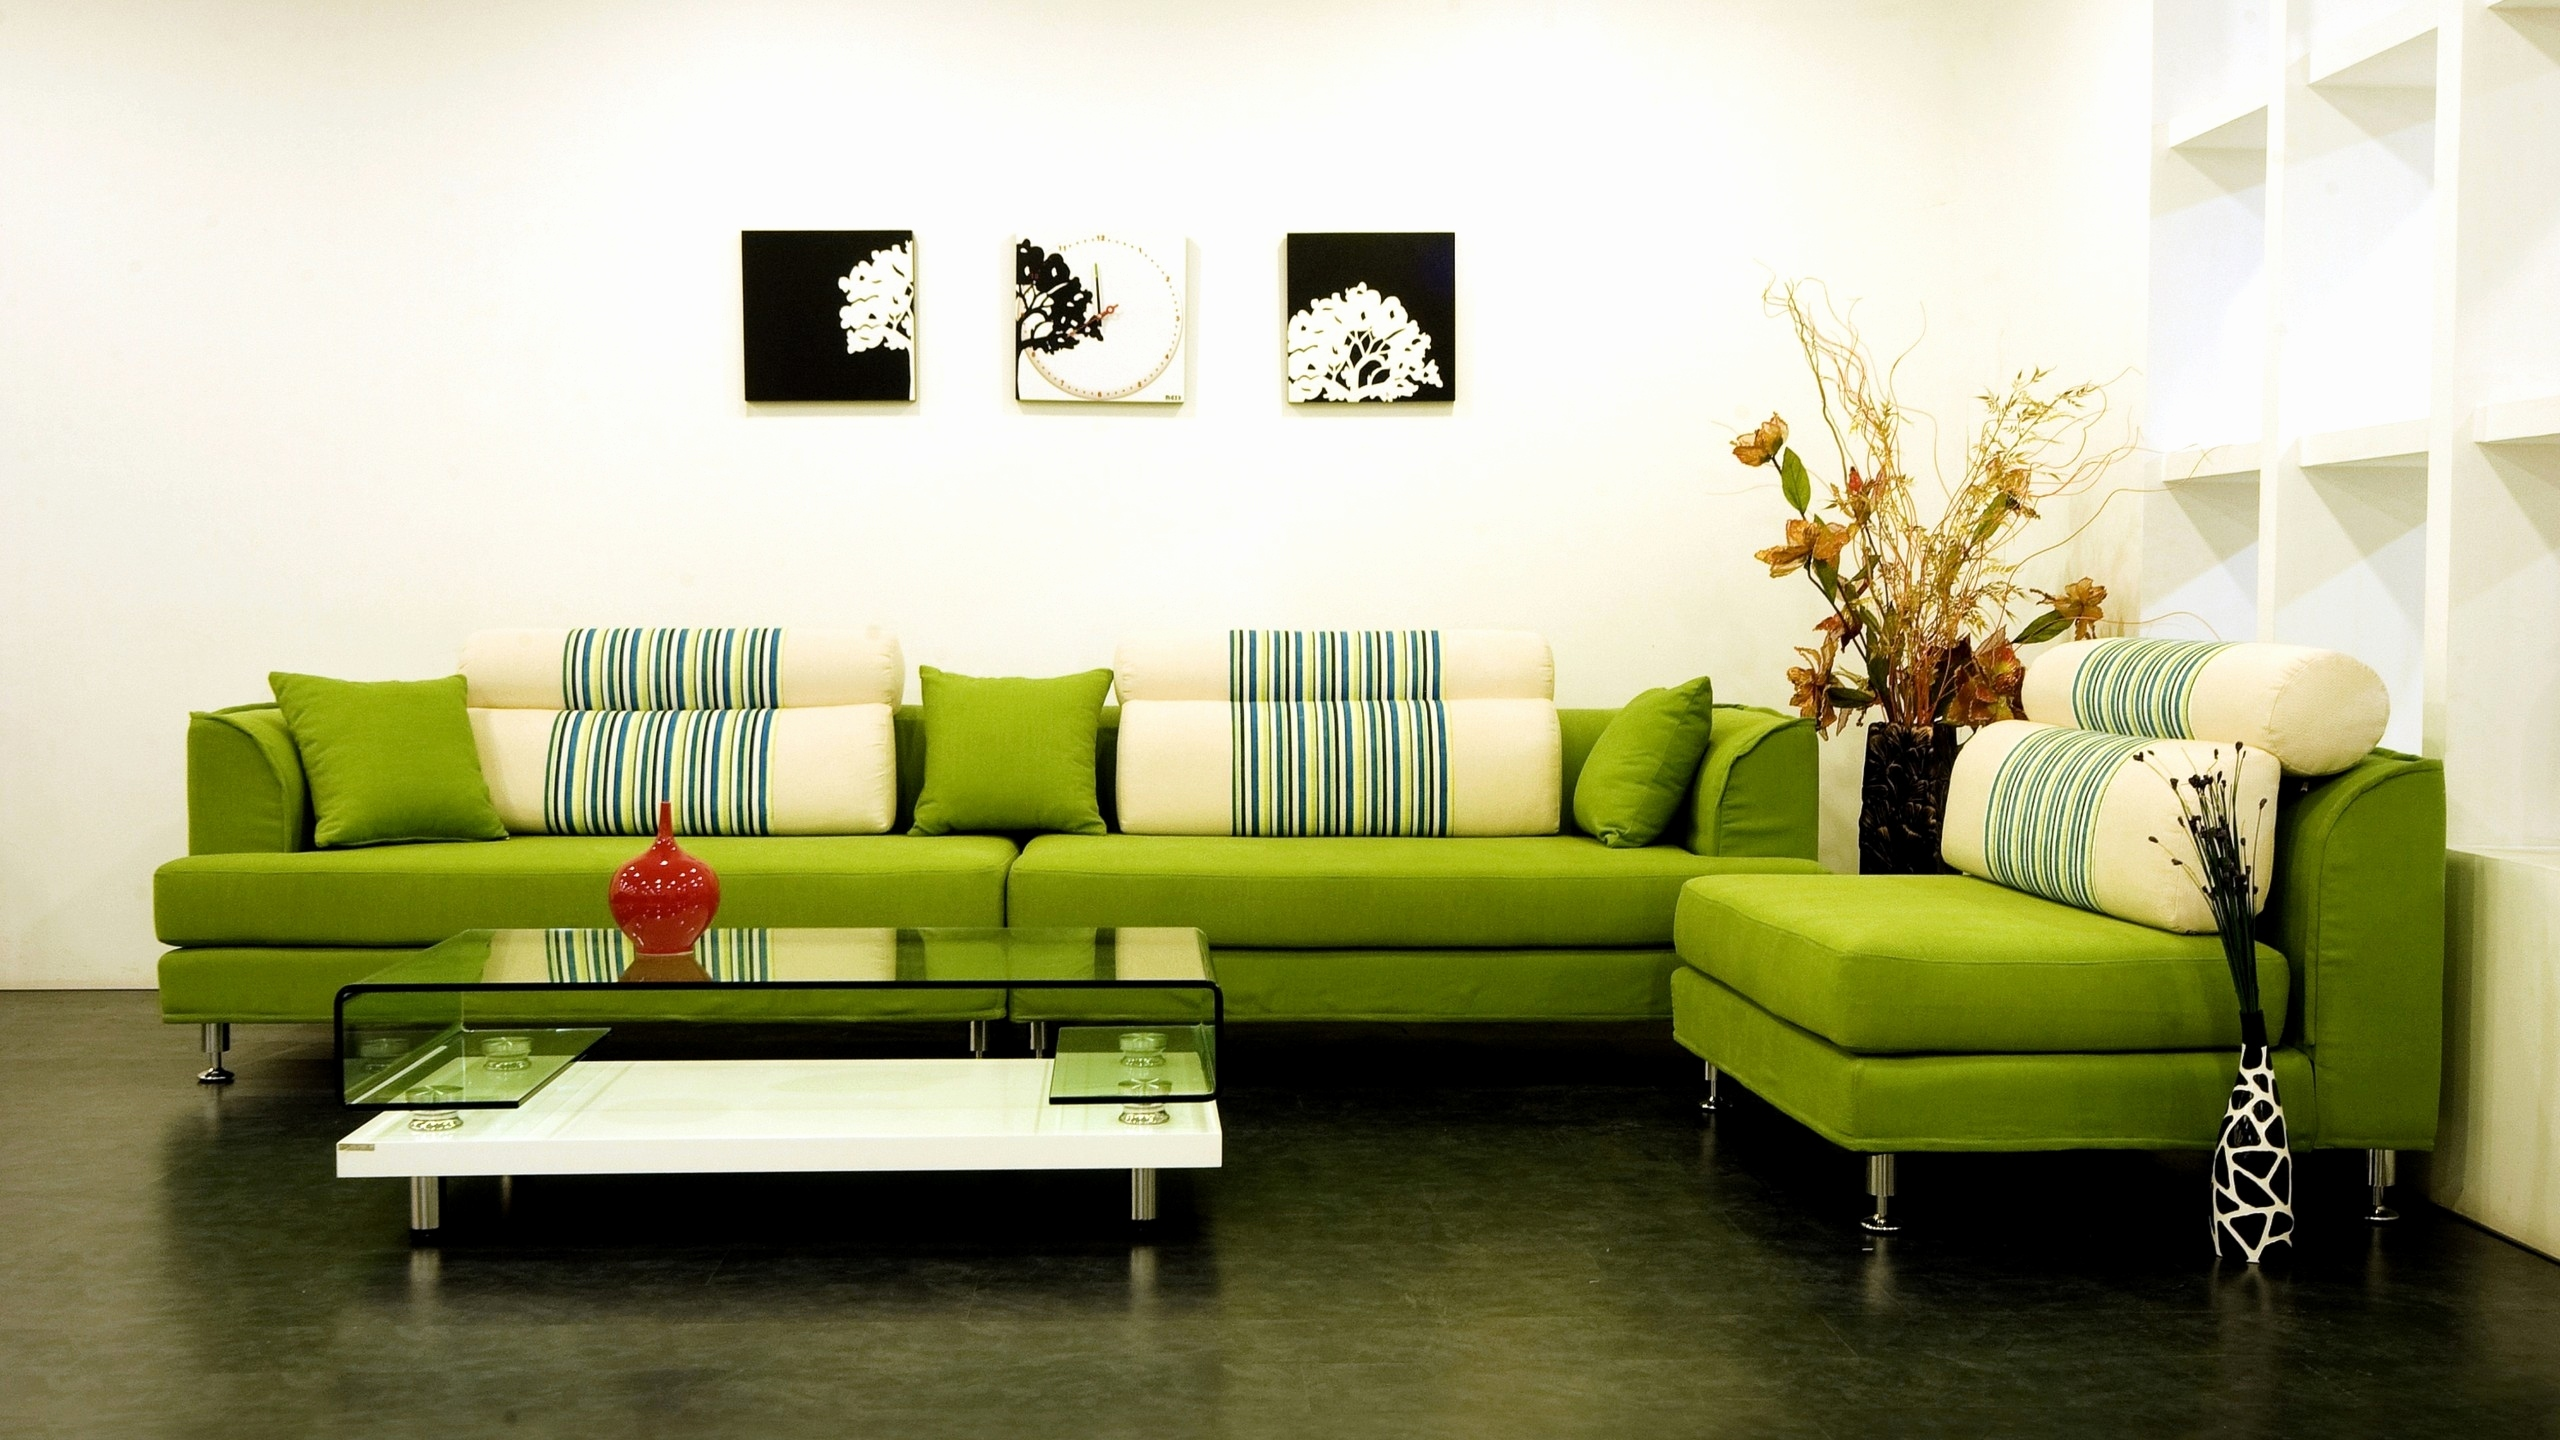 decorating ideas for green living rooms Luxury Remodelling your hgtv home design with Improve Stunning green